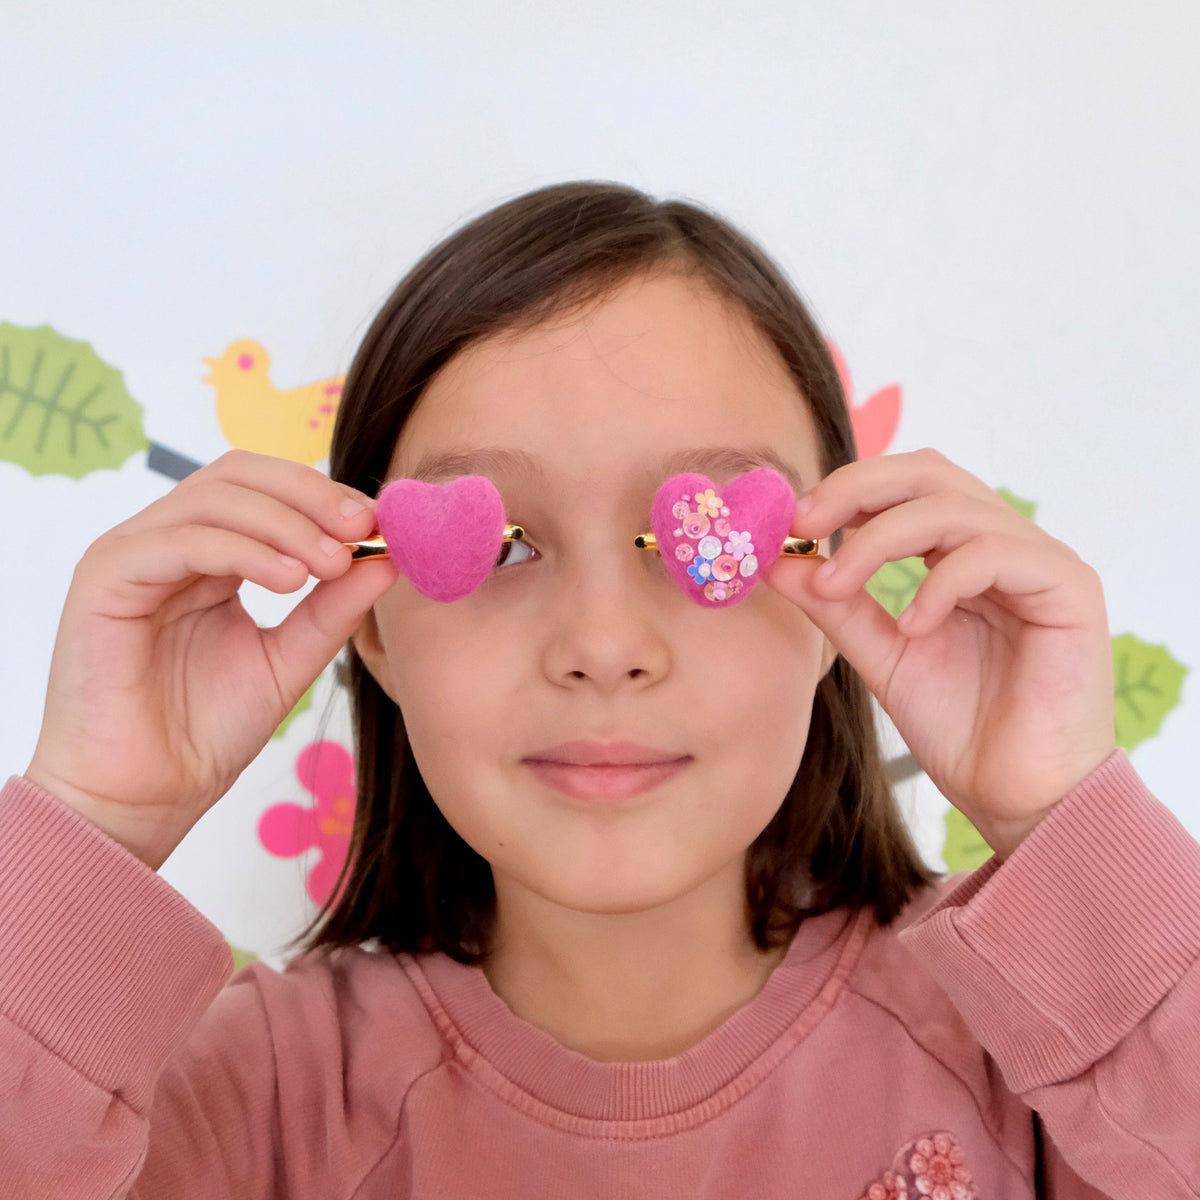 Girl with heart hair clips